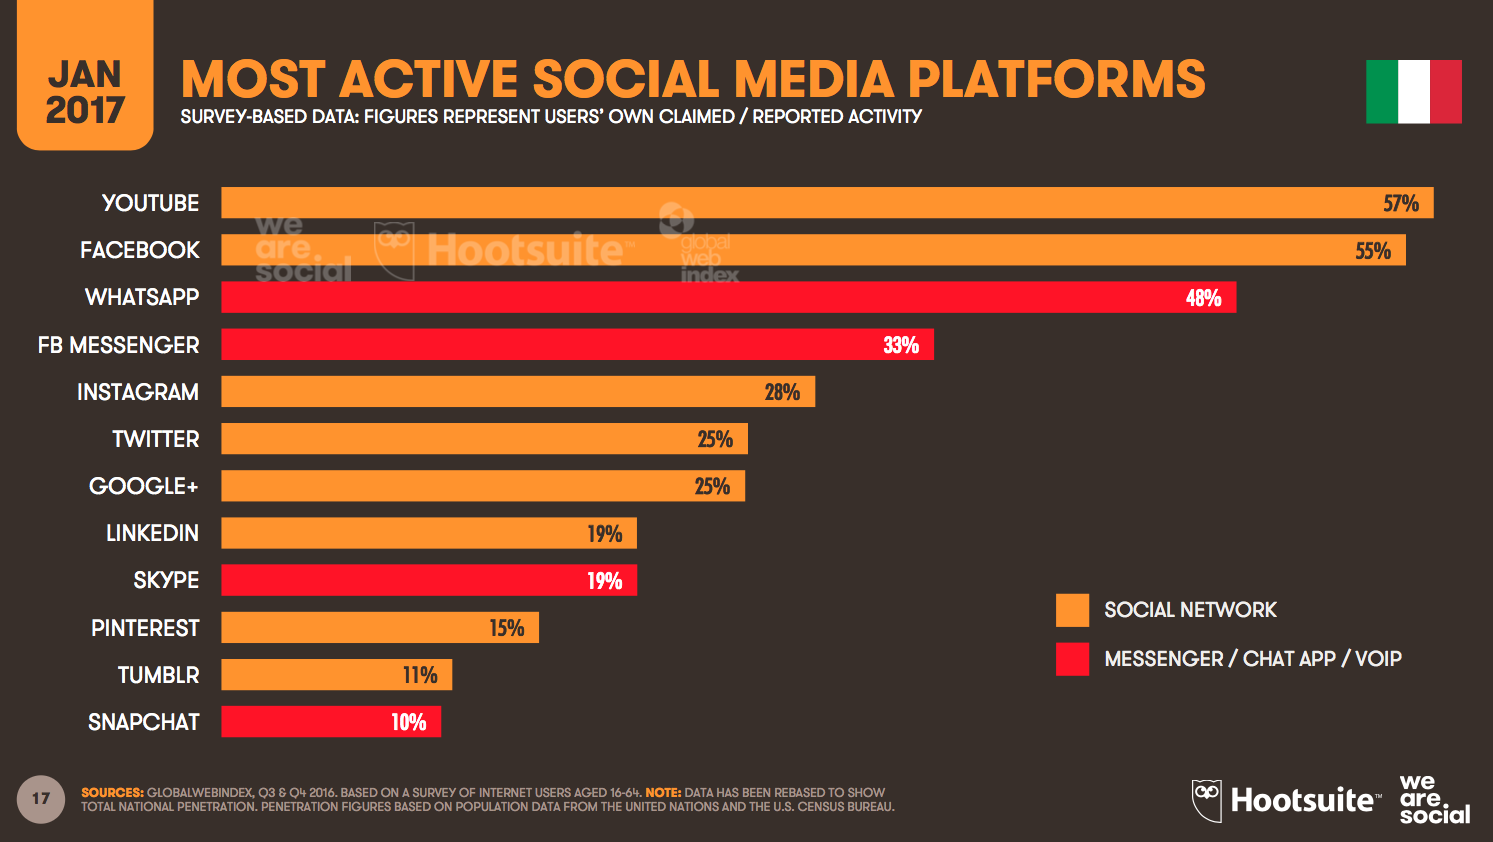 Most Active Social Media Platforms in Italy